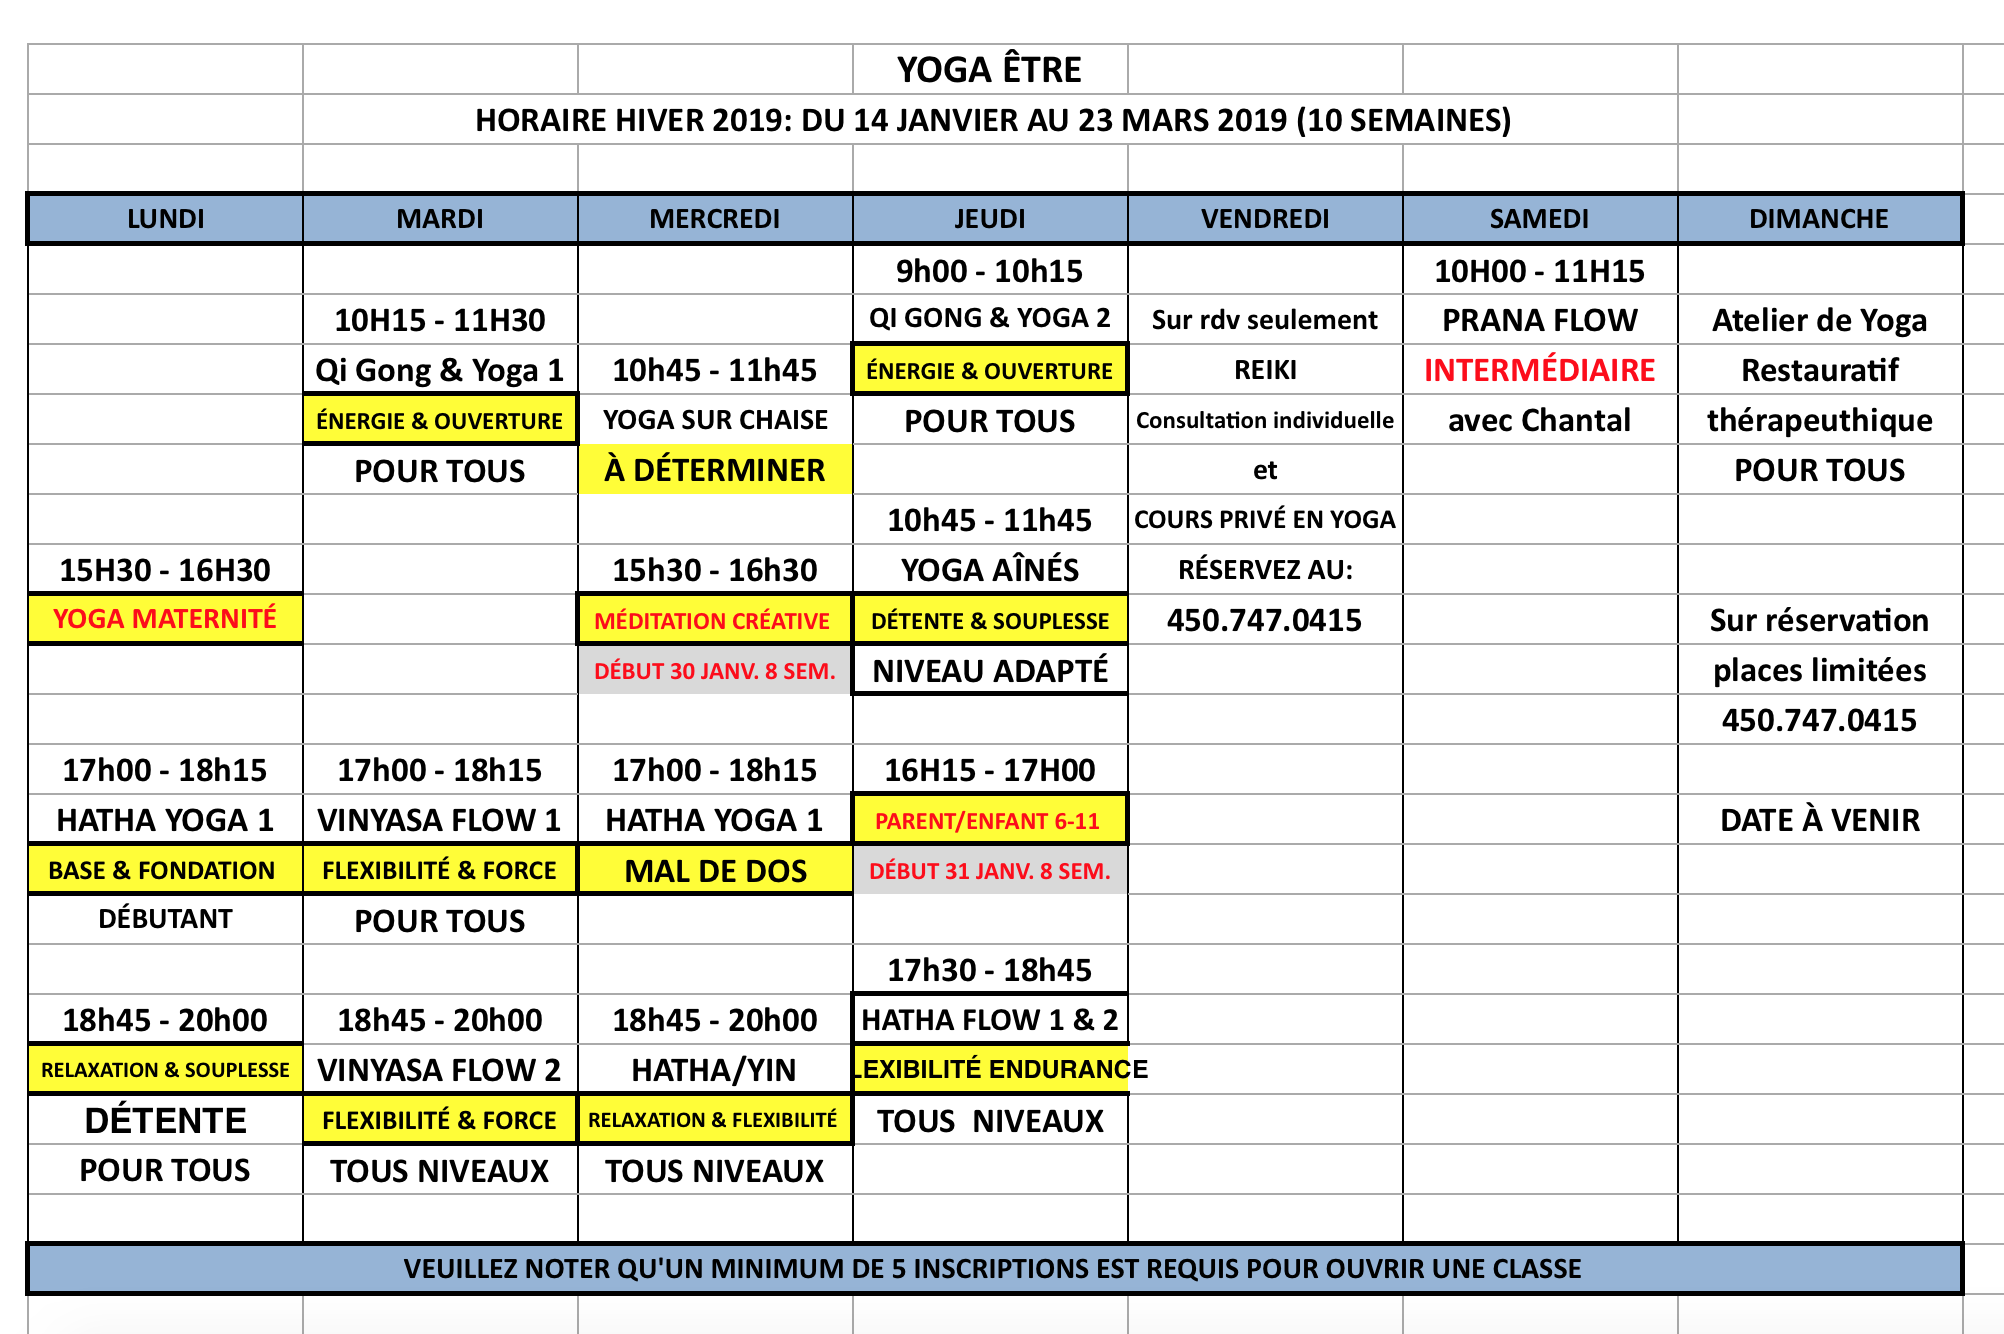 horaire_hiver2019